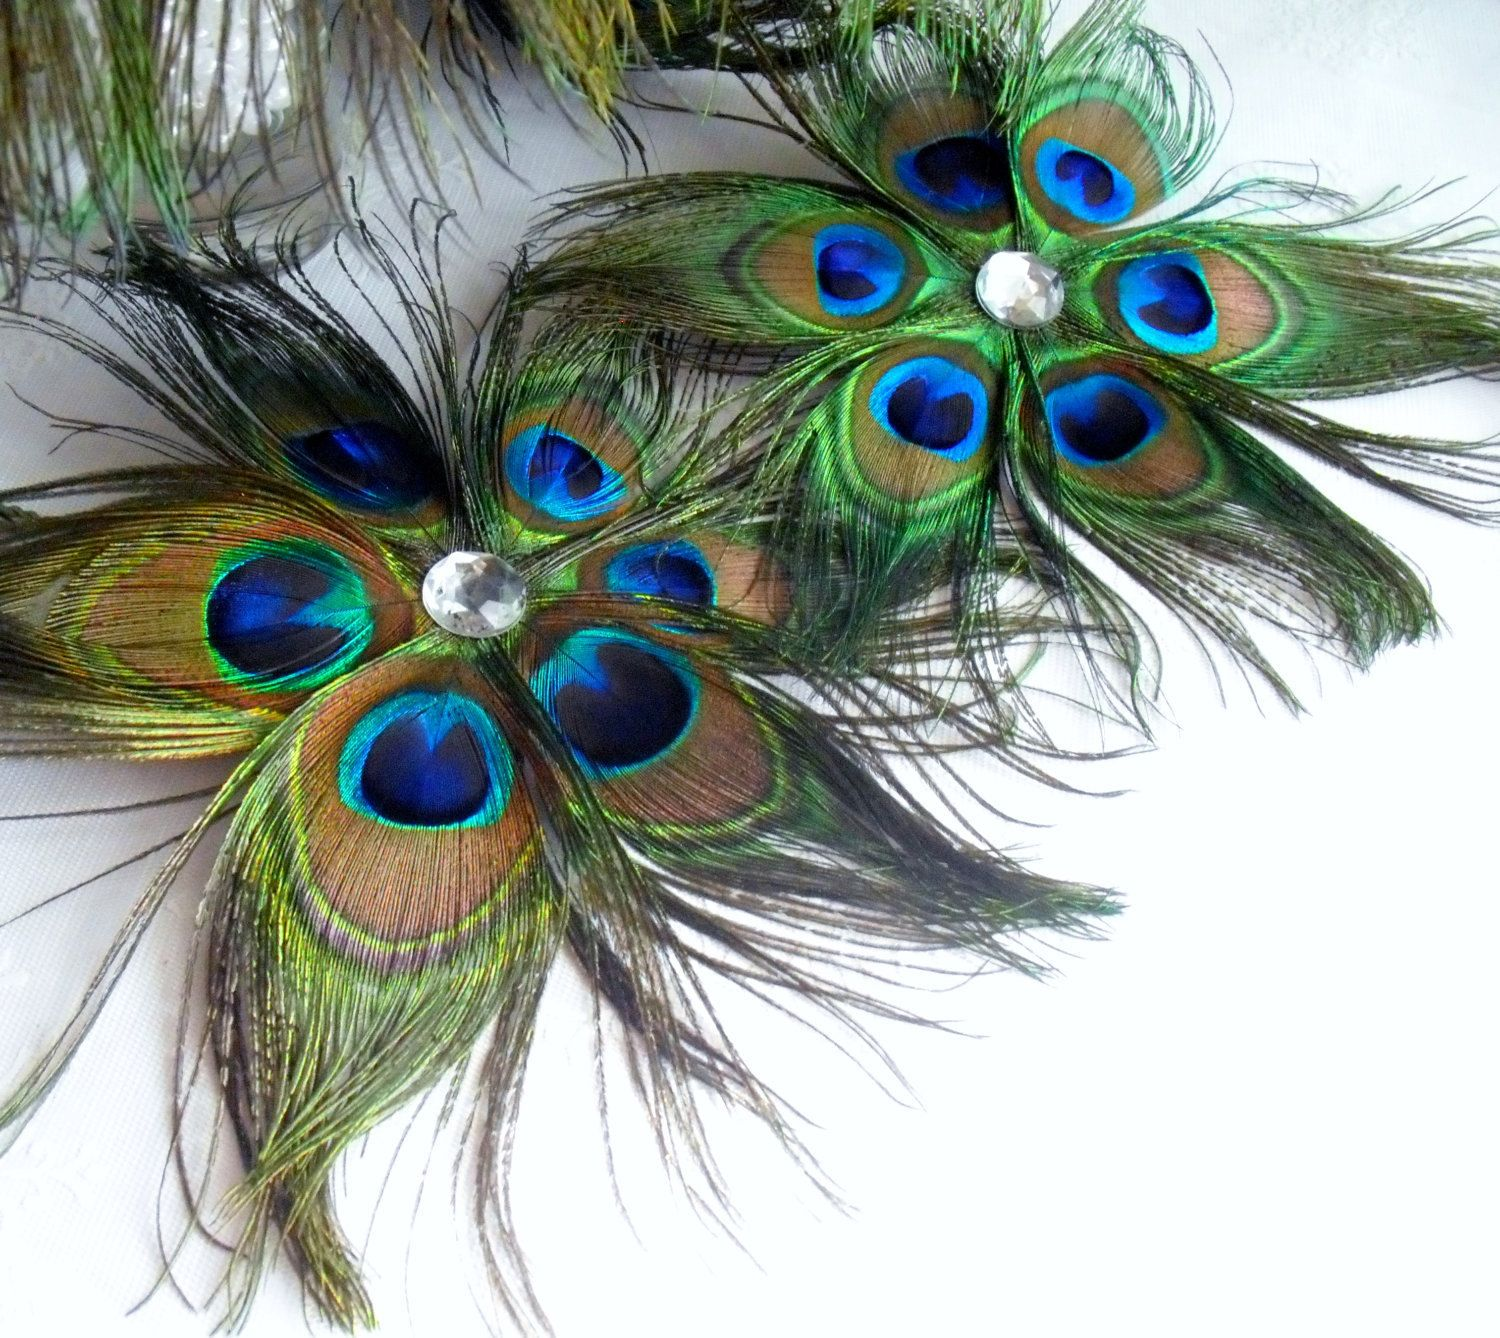 Diy Feather Bouquets Weddings: Peacock Feather Flowers Set Of Six For Making DIY Brides